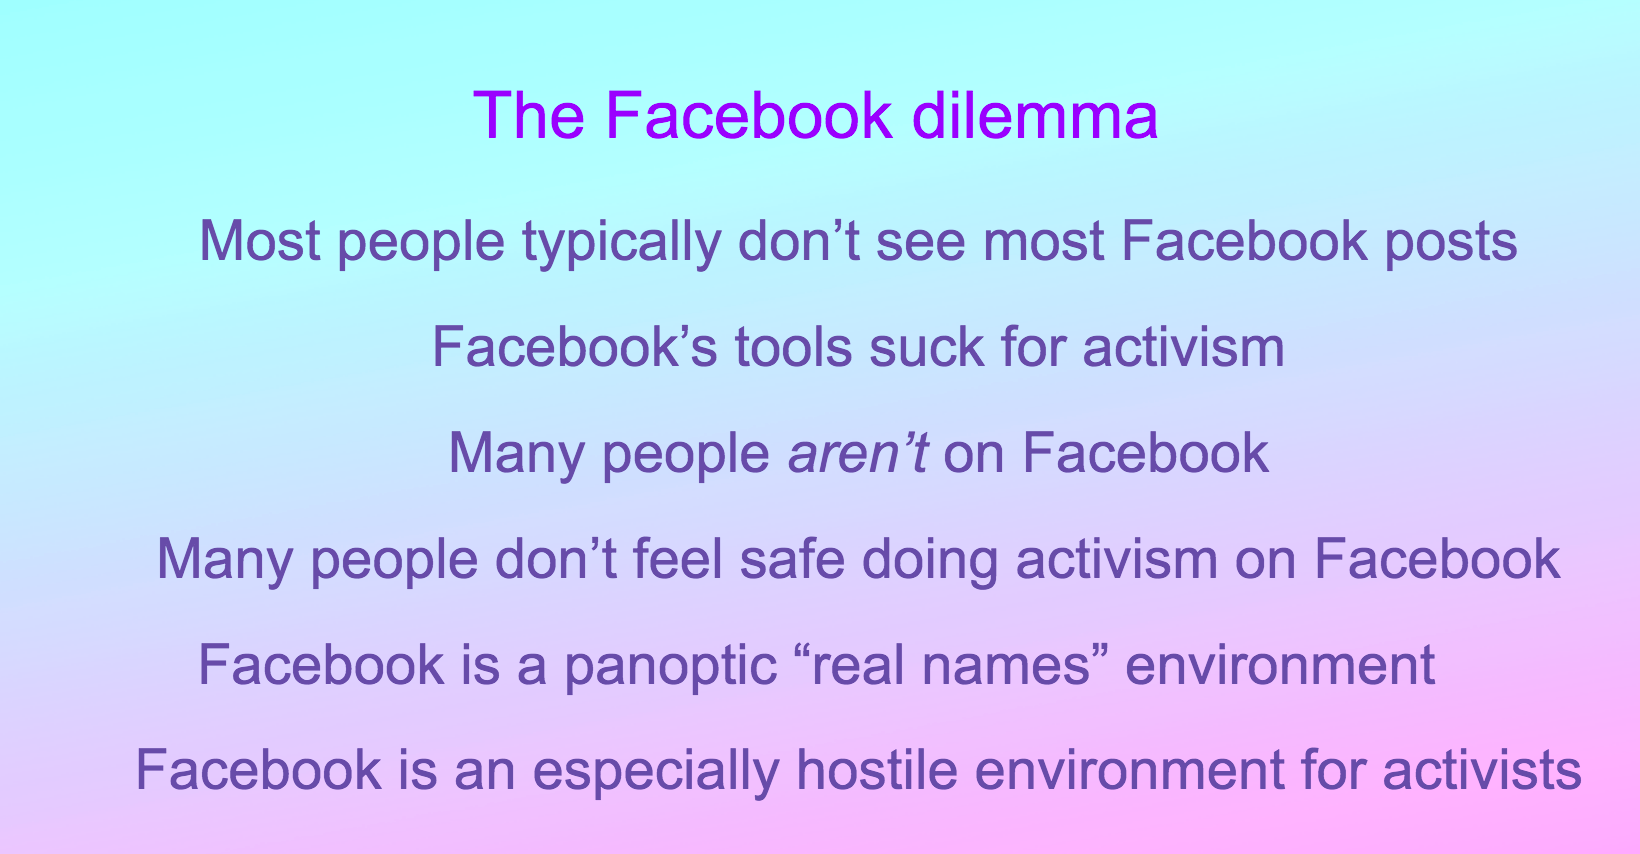 "The Facebook dilemma: Most people typically don't see most Facebook posts; Facebook's tools suck for activism; Many people aren't on Facebook; Many people don't feel safe doing activism on Facebook; Facebook is a panoptic ""real names"" environment; Facebook is an especially hostile environment for activists"